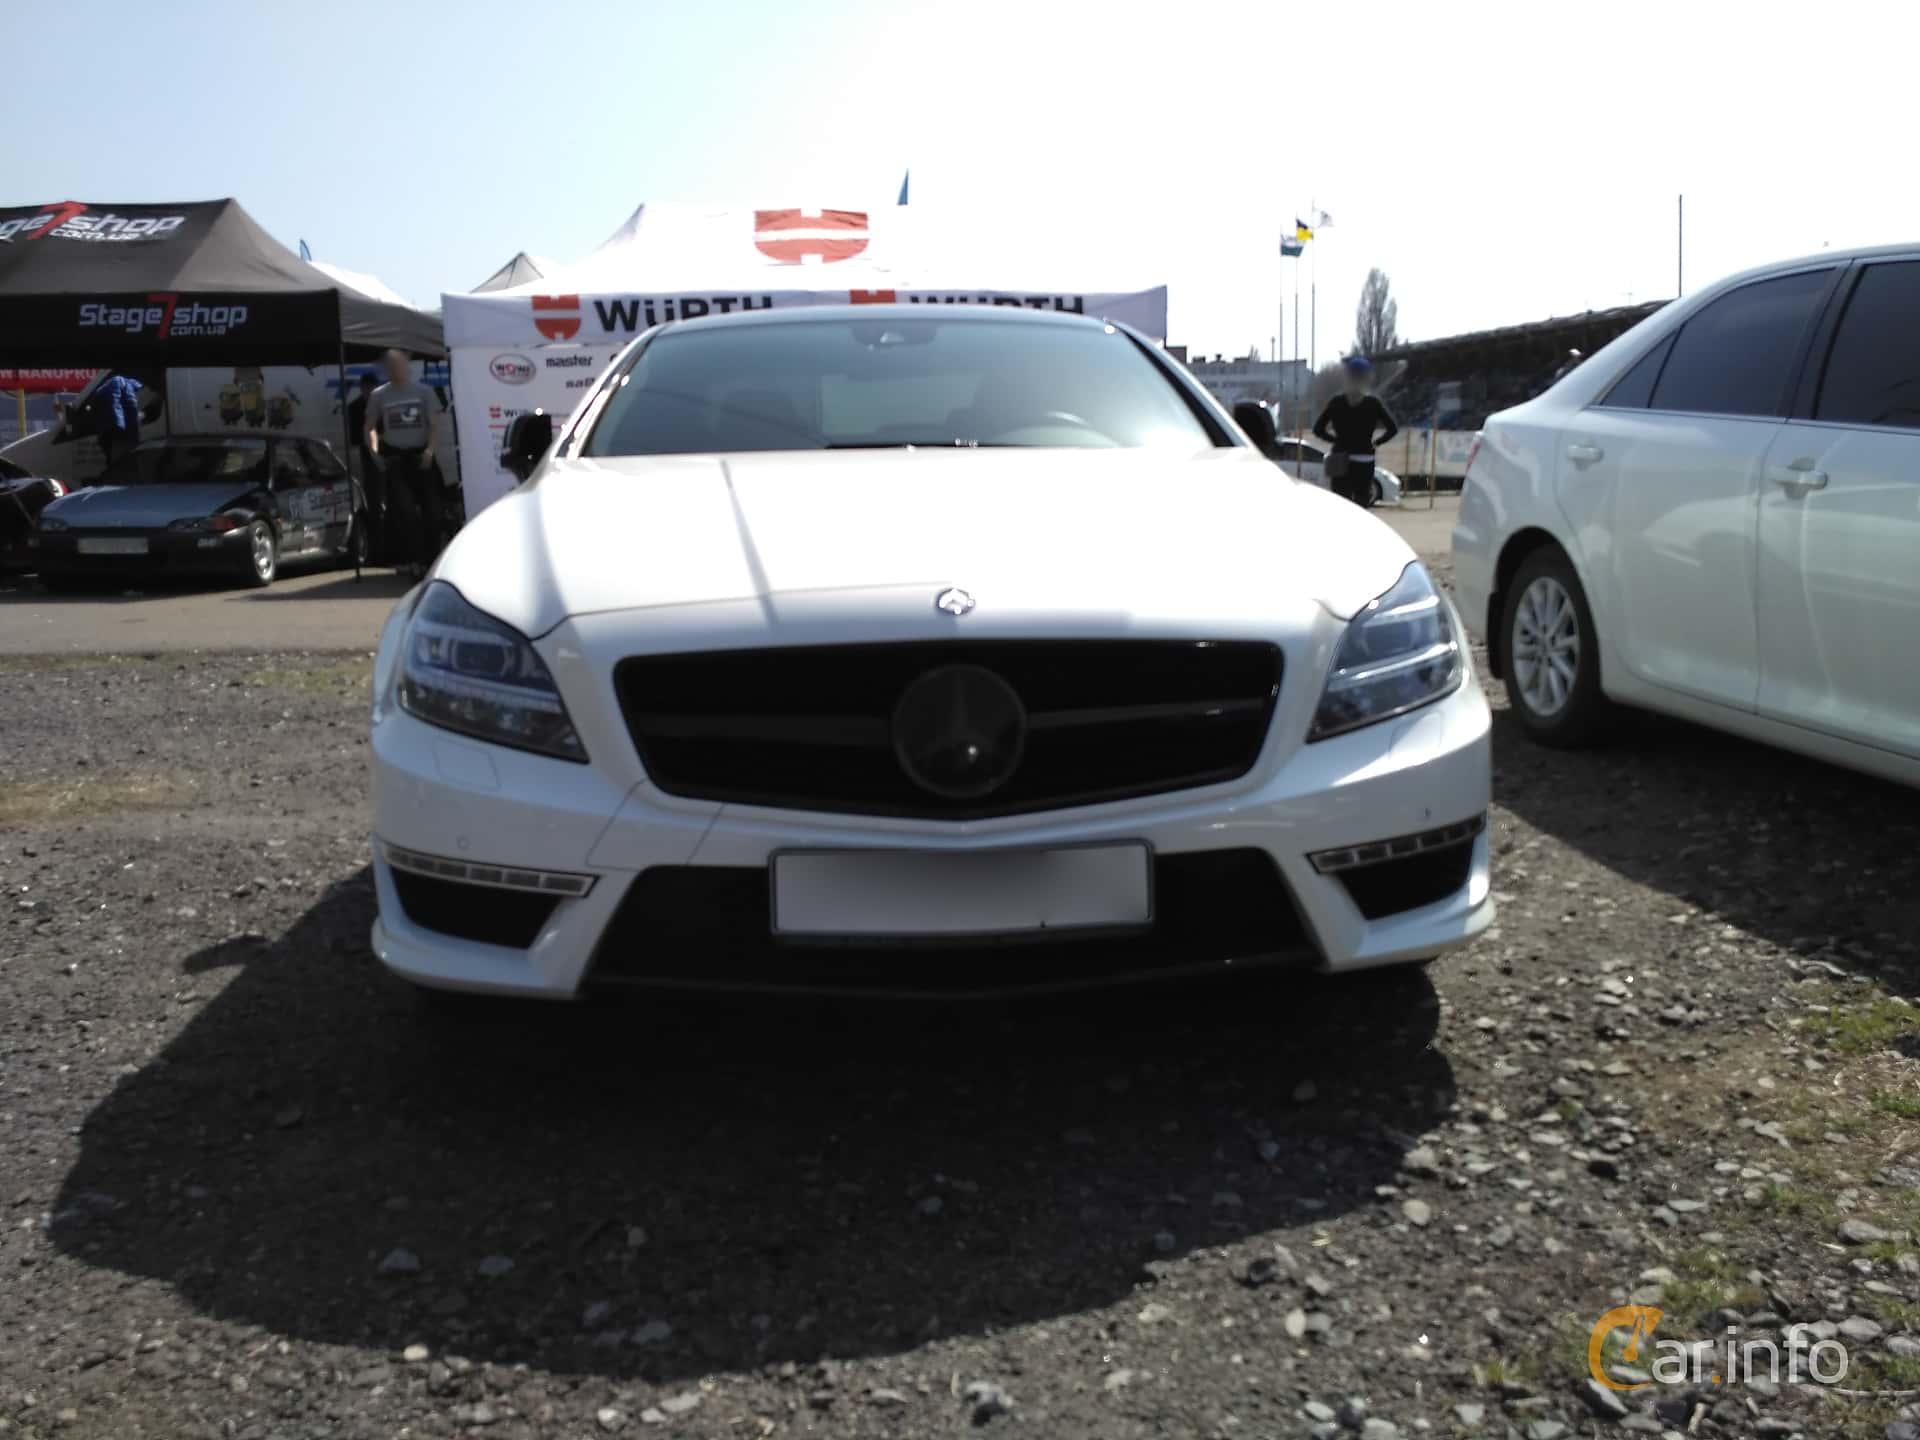 Mercedes-Benz CLS 63 AMG S 4MATIC 5.5 V8 4MATIC AMG Speedshift MCT, 585hk, 2013 at Ltava Time Attack 1st Stage